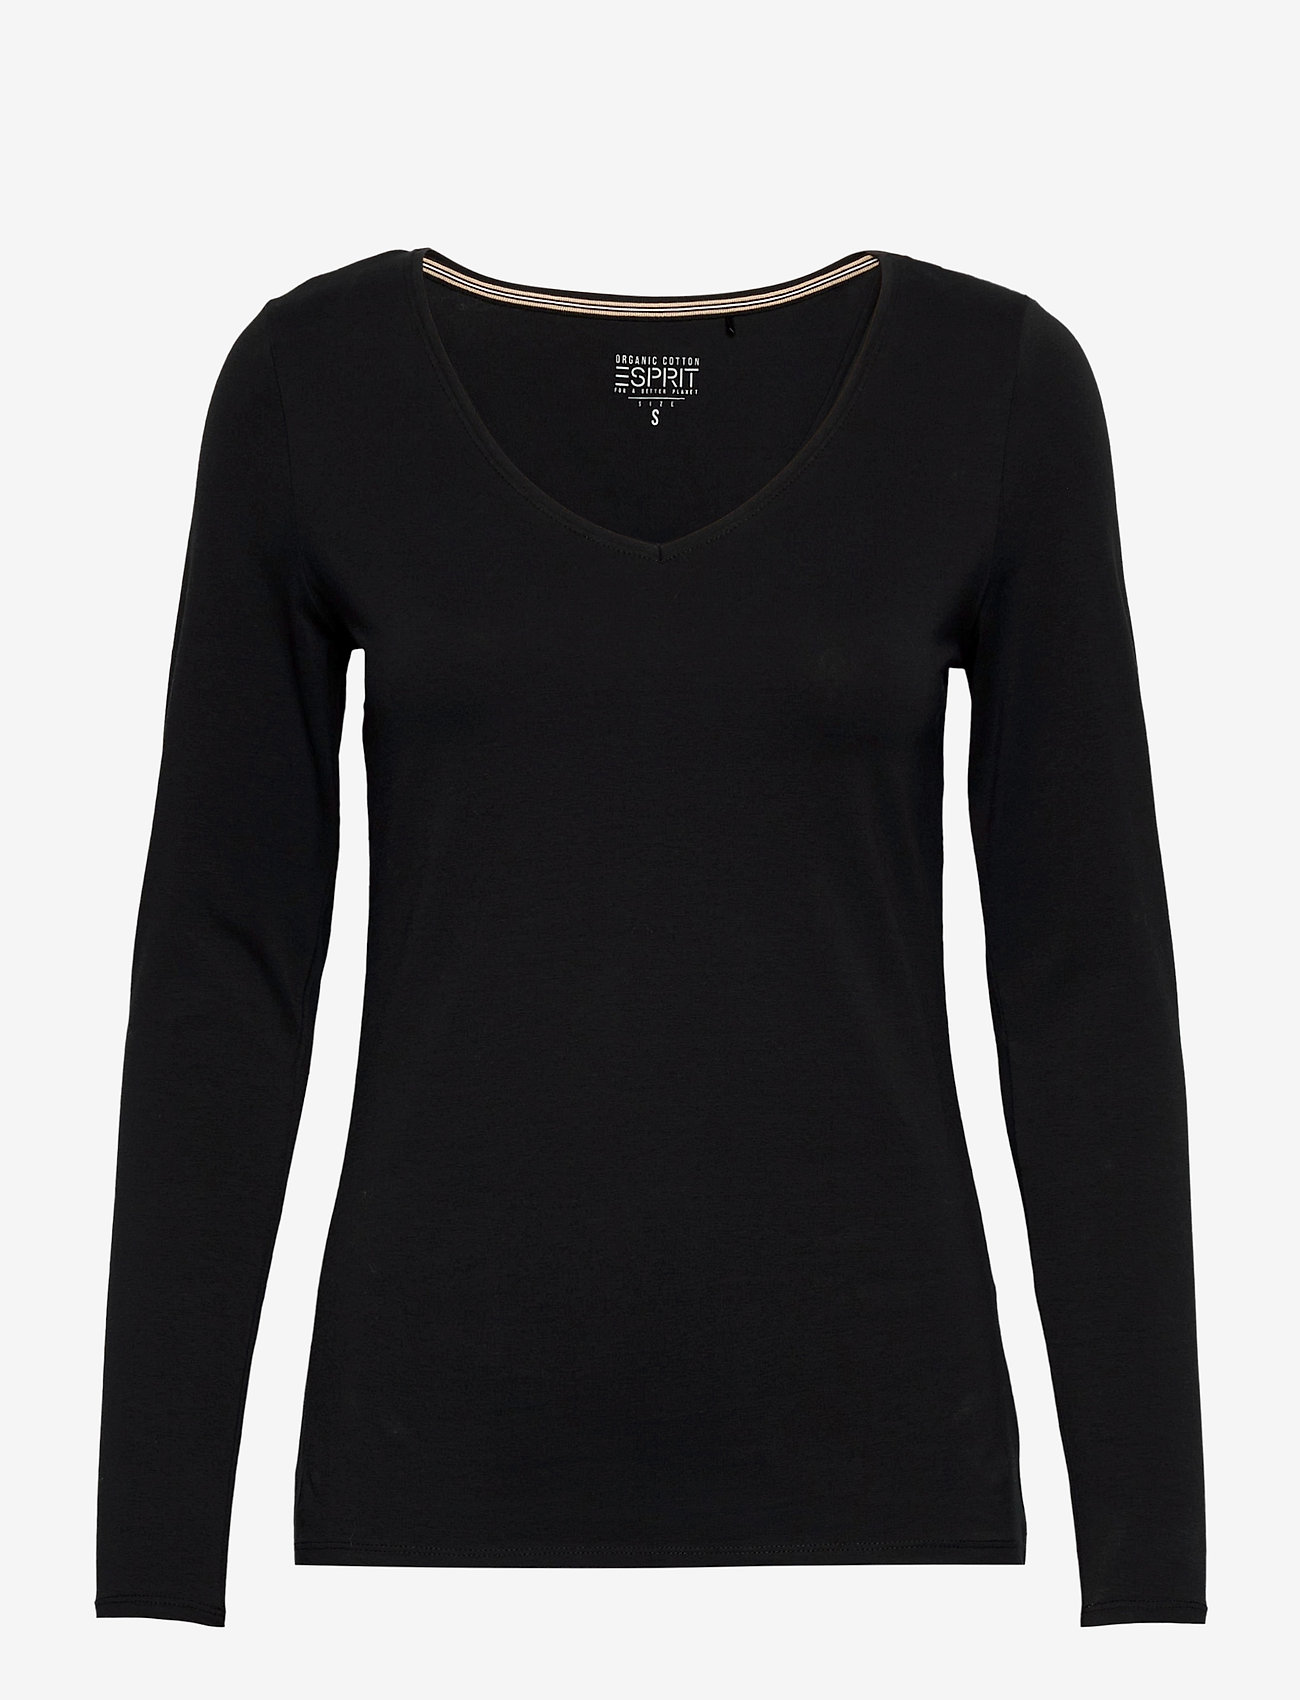 Esprit Casual - T-Shirts - t-shirt & tops - black - 0